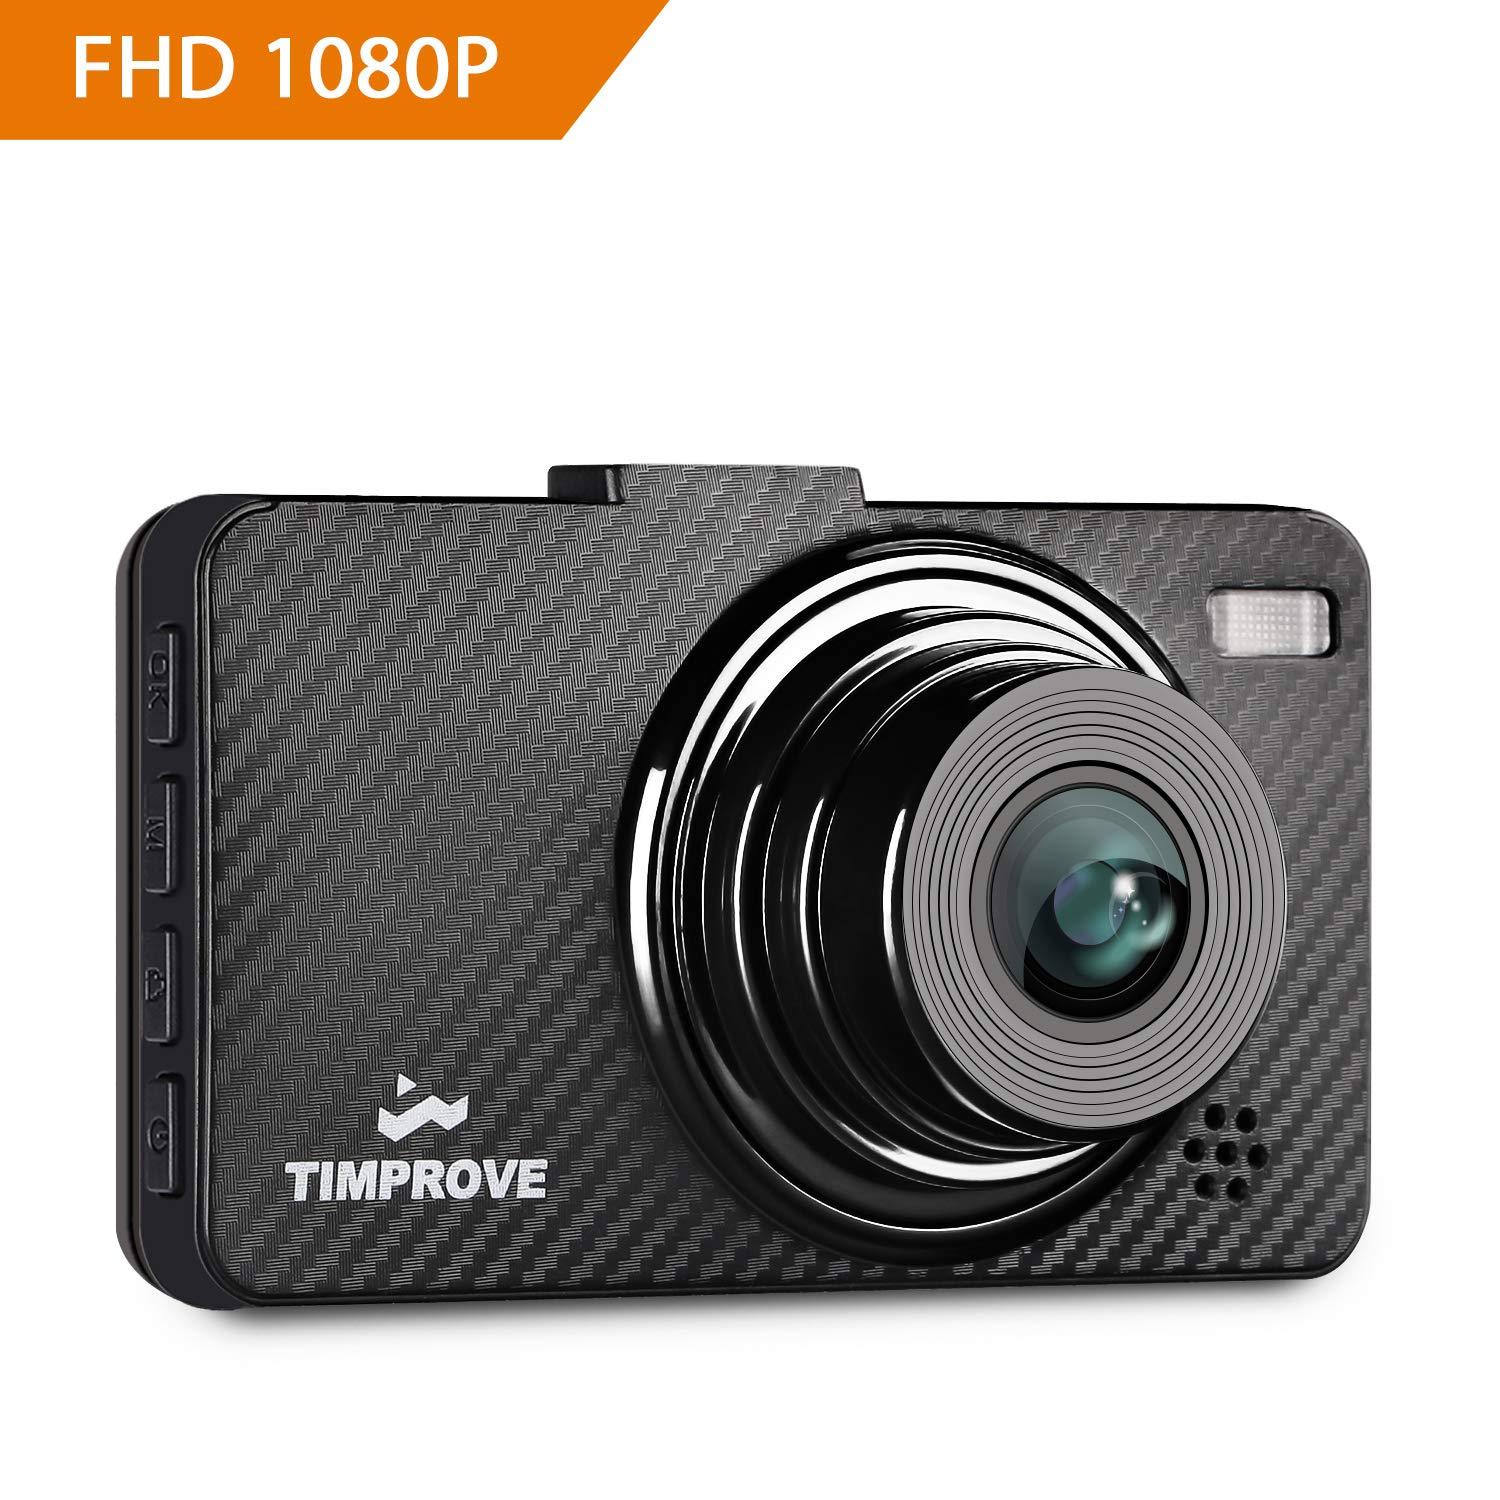 TIMPROVE Dash Cam 1080P FHD DVR Recorder Car Dashboard Camera with 3' LCD Screen, 6-Lane 170° Wide Angle Lens, G-Sensor, Motion Detection and Clear Nighttime Recording E100